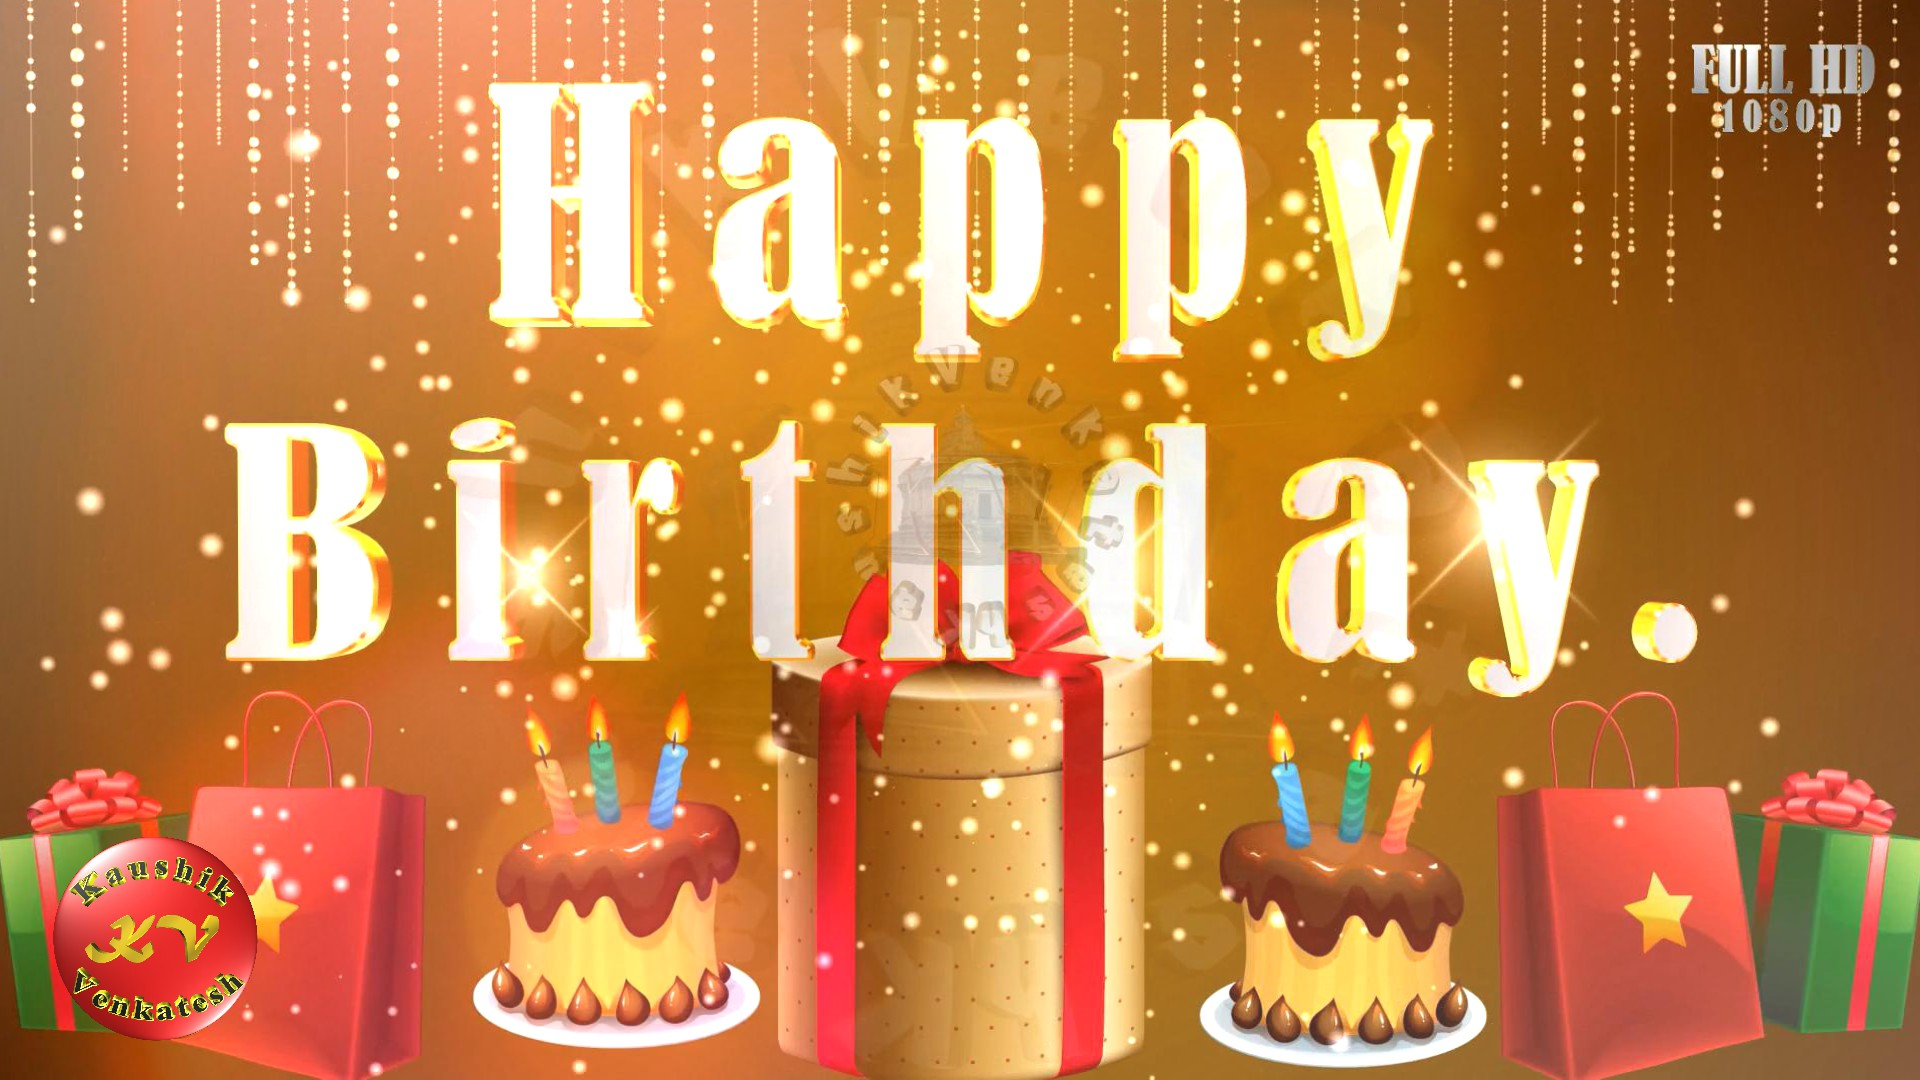 Wallpaper Image for Happy Birthday.